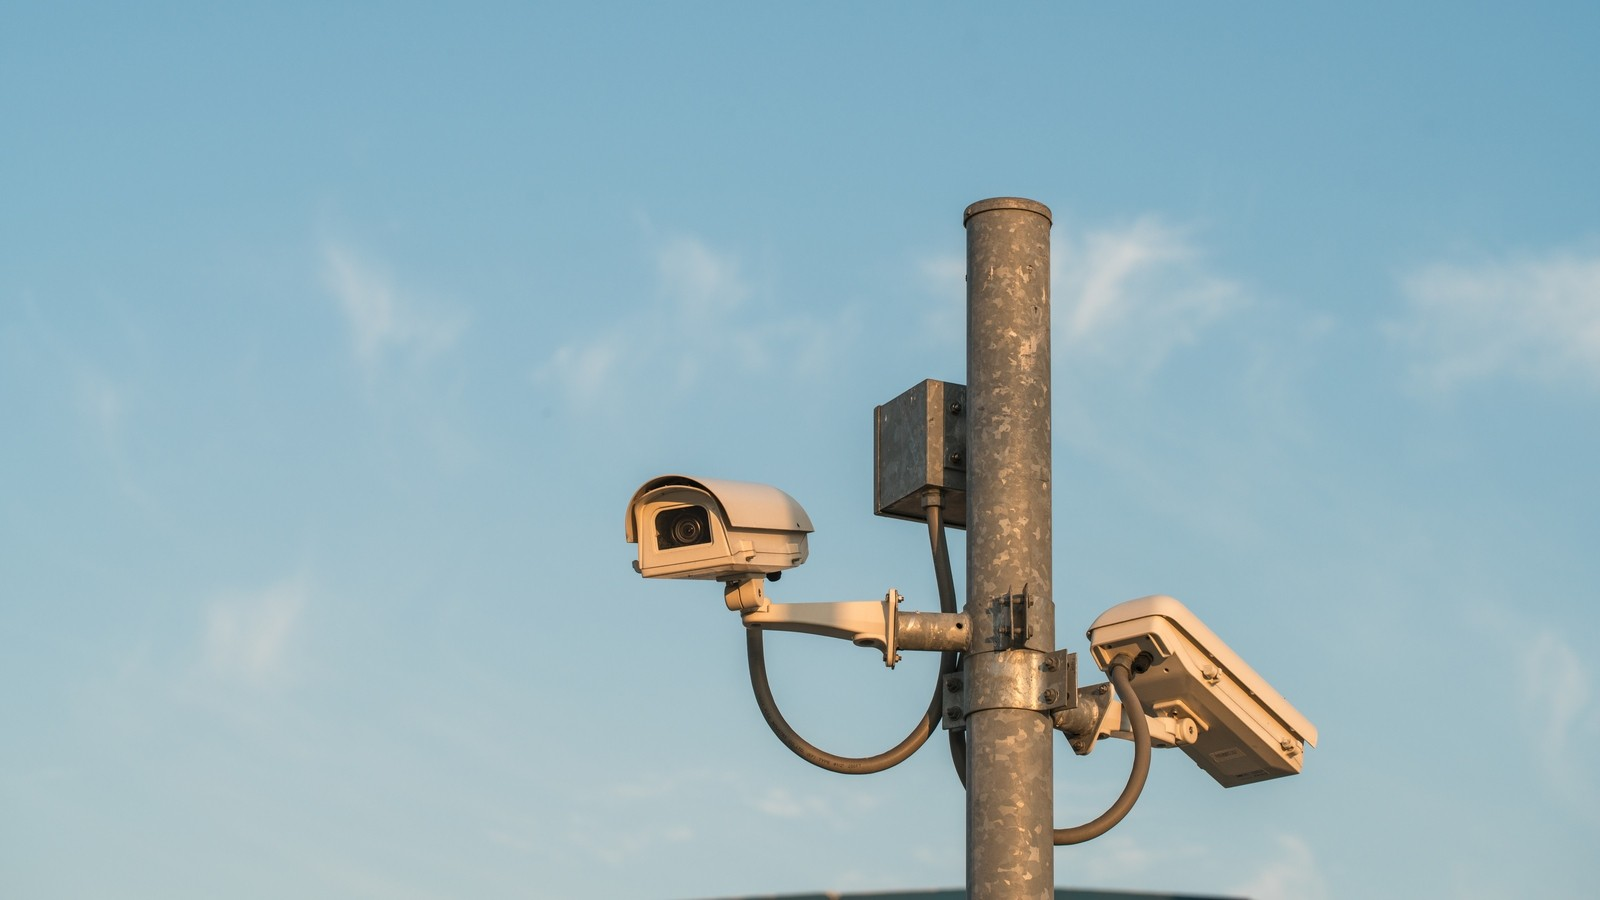 Tough cameras can record events such as traffic, accidents. And